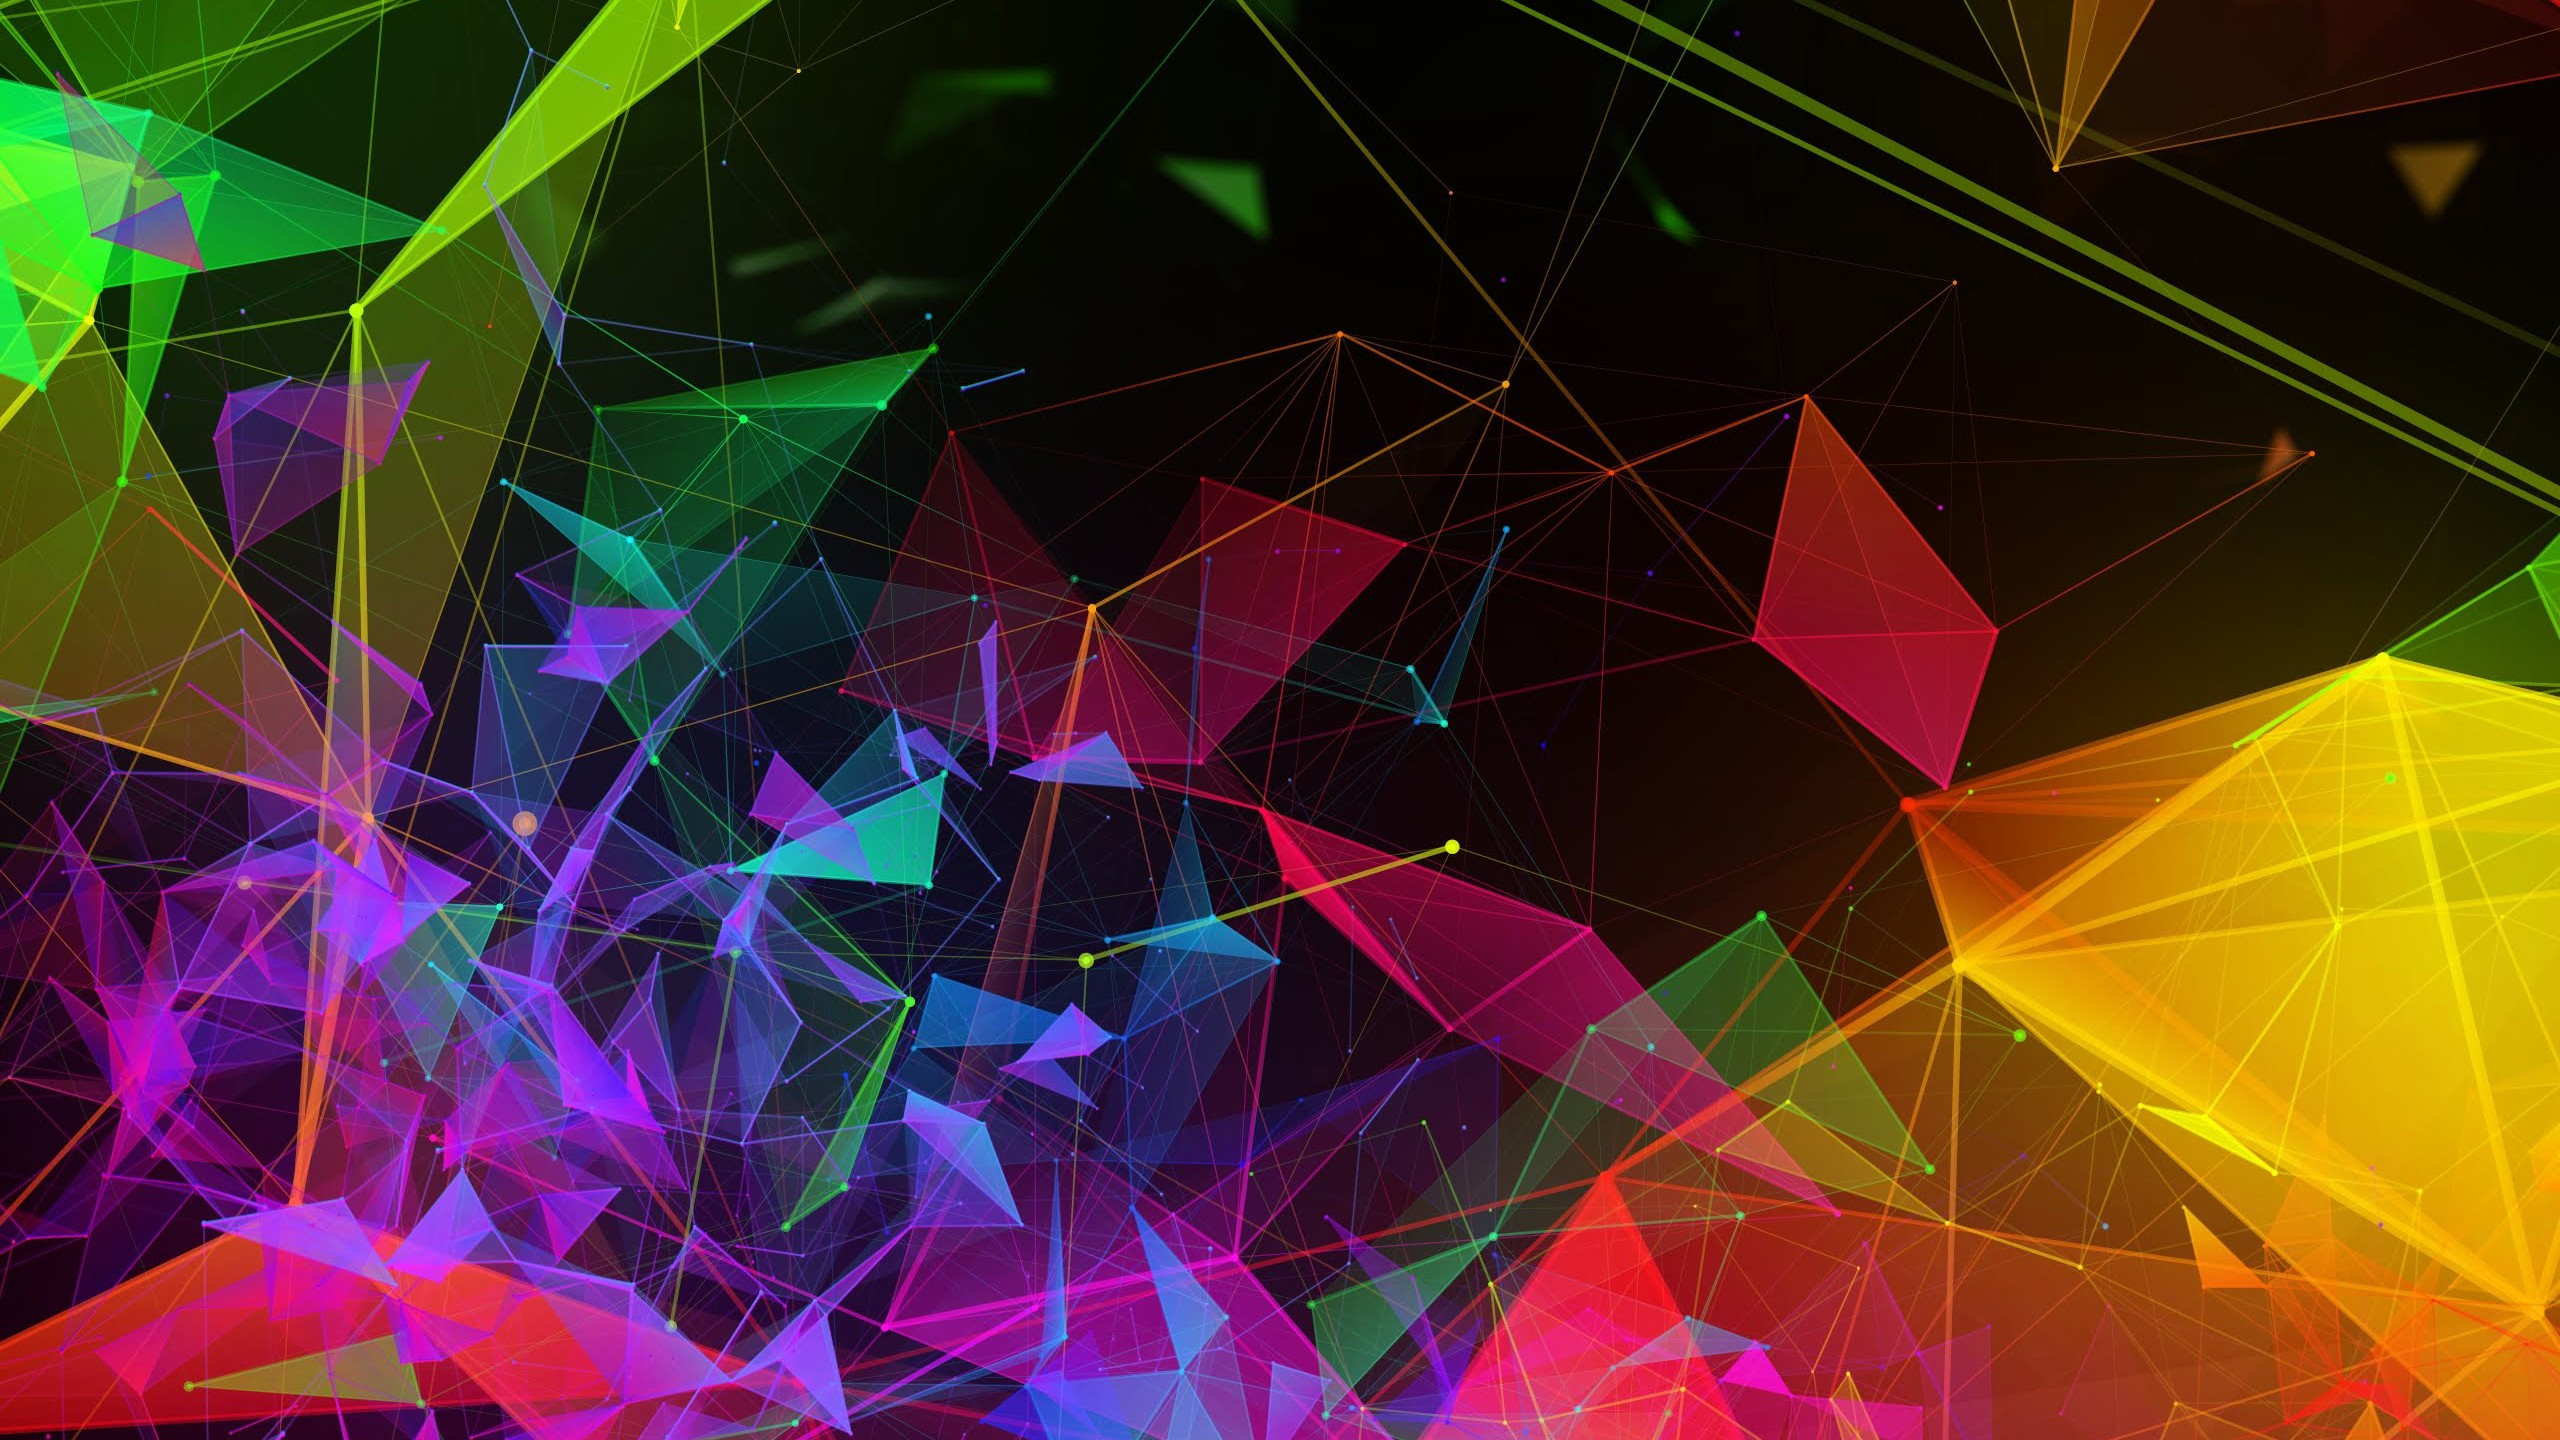 Wallpaper Razer Phone 2, abstract, colorful, HD, OS #20755